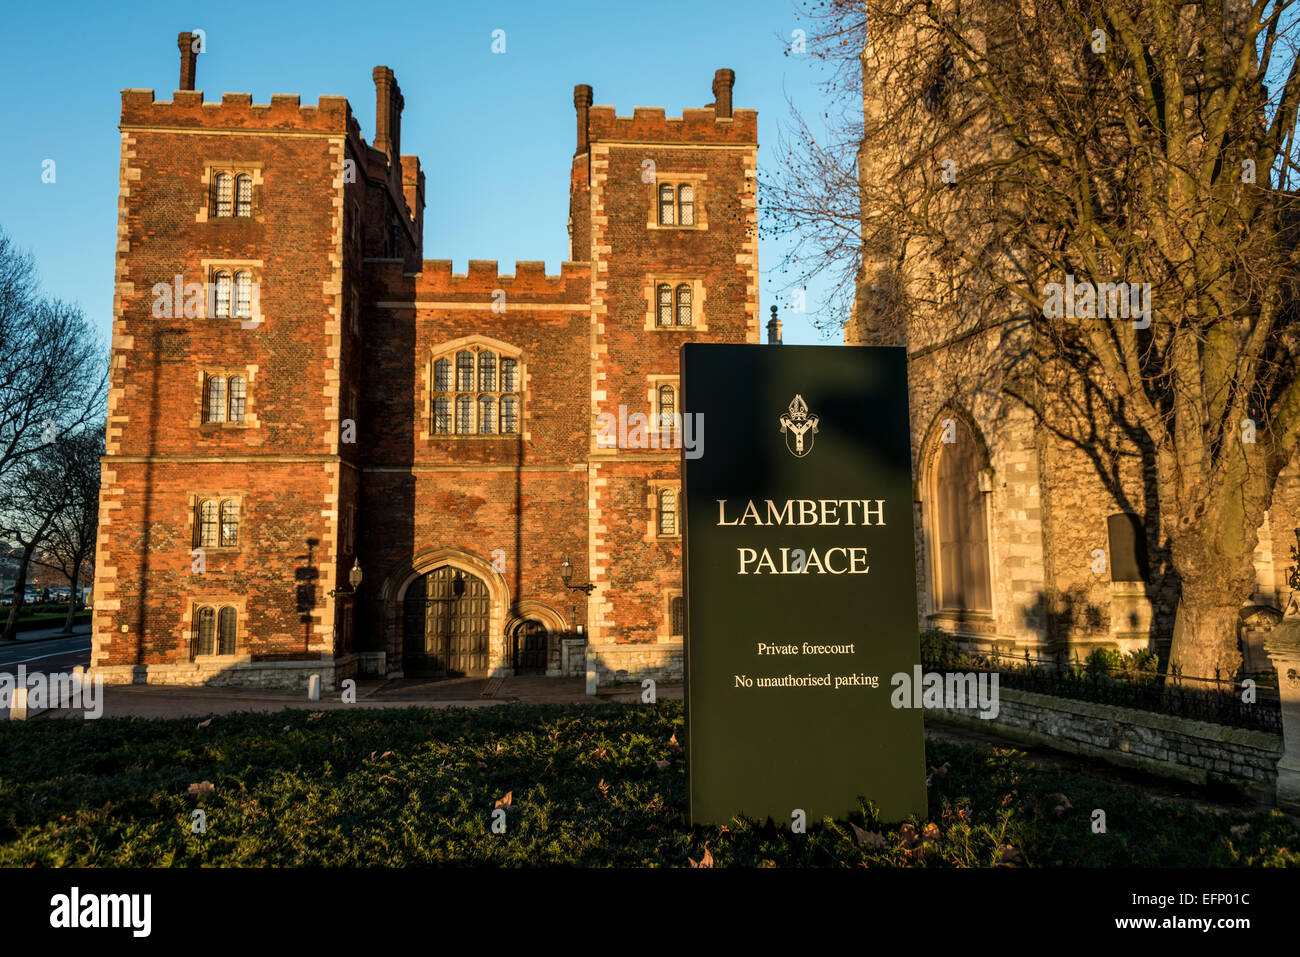 Lambeth Palace is the official London residence of the Archbishop of Canterbury in England, in North Lambeth. - Stock Image